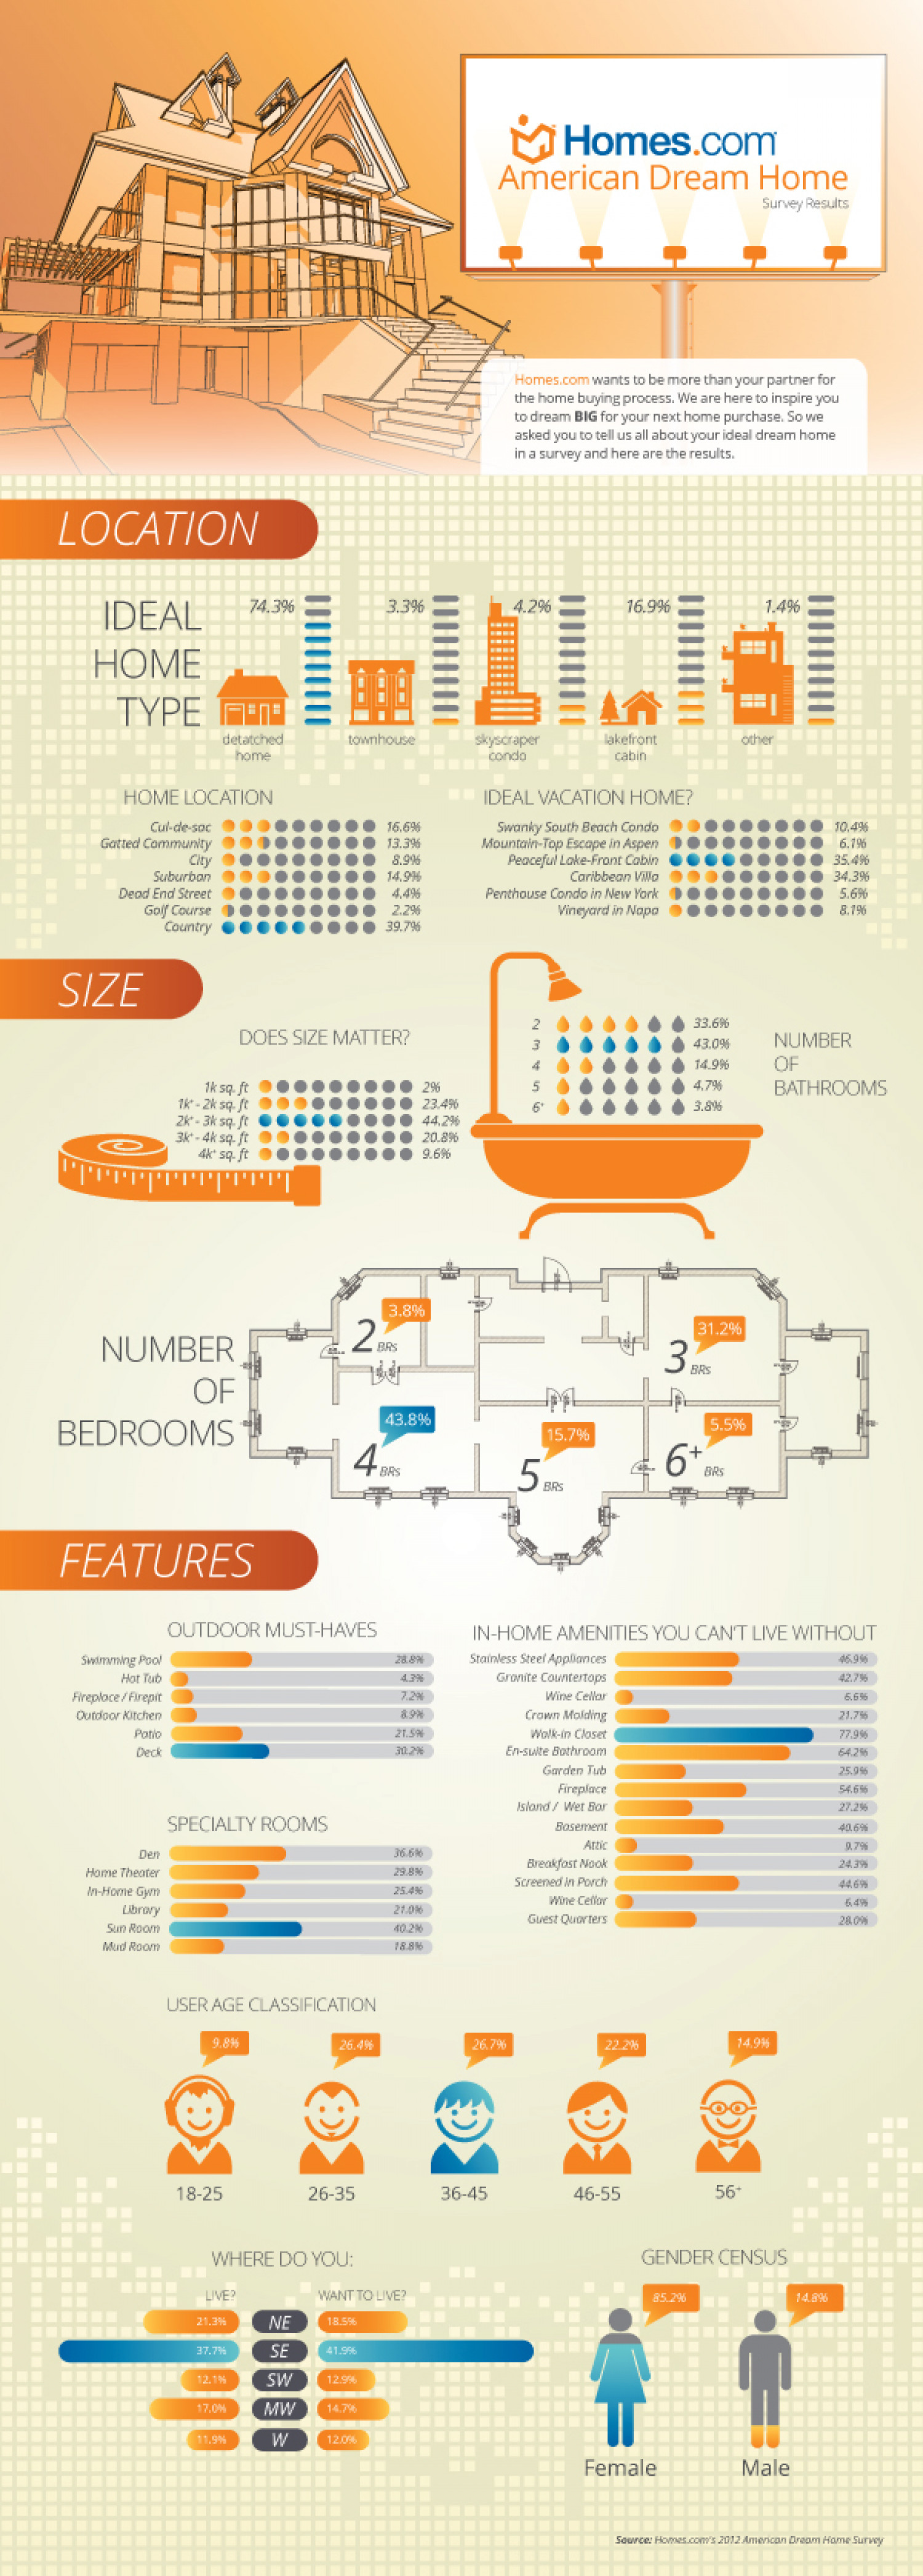 American Dream Home Survey Results Infographic